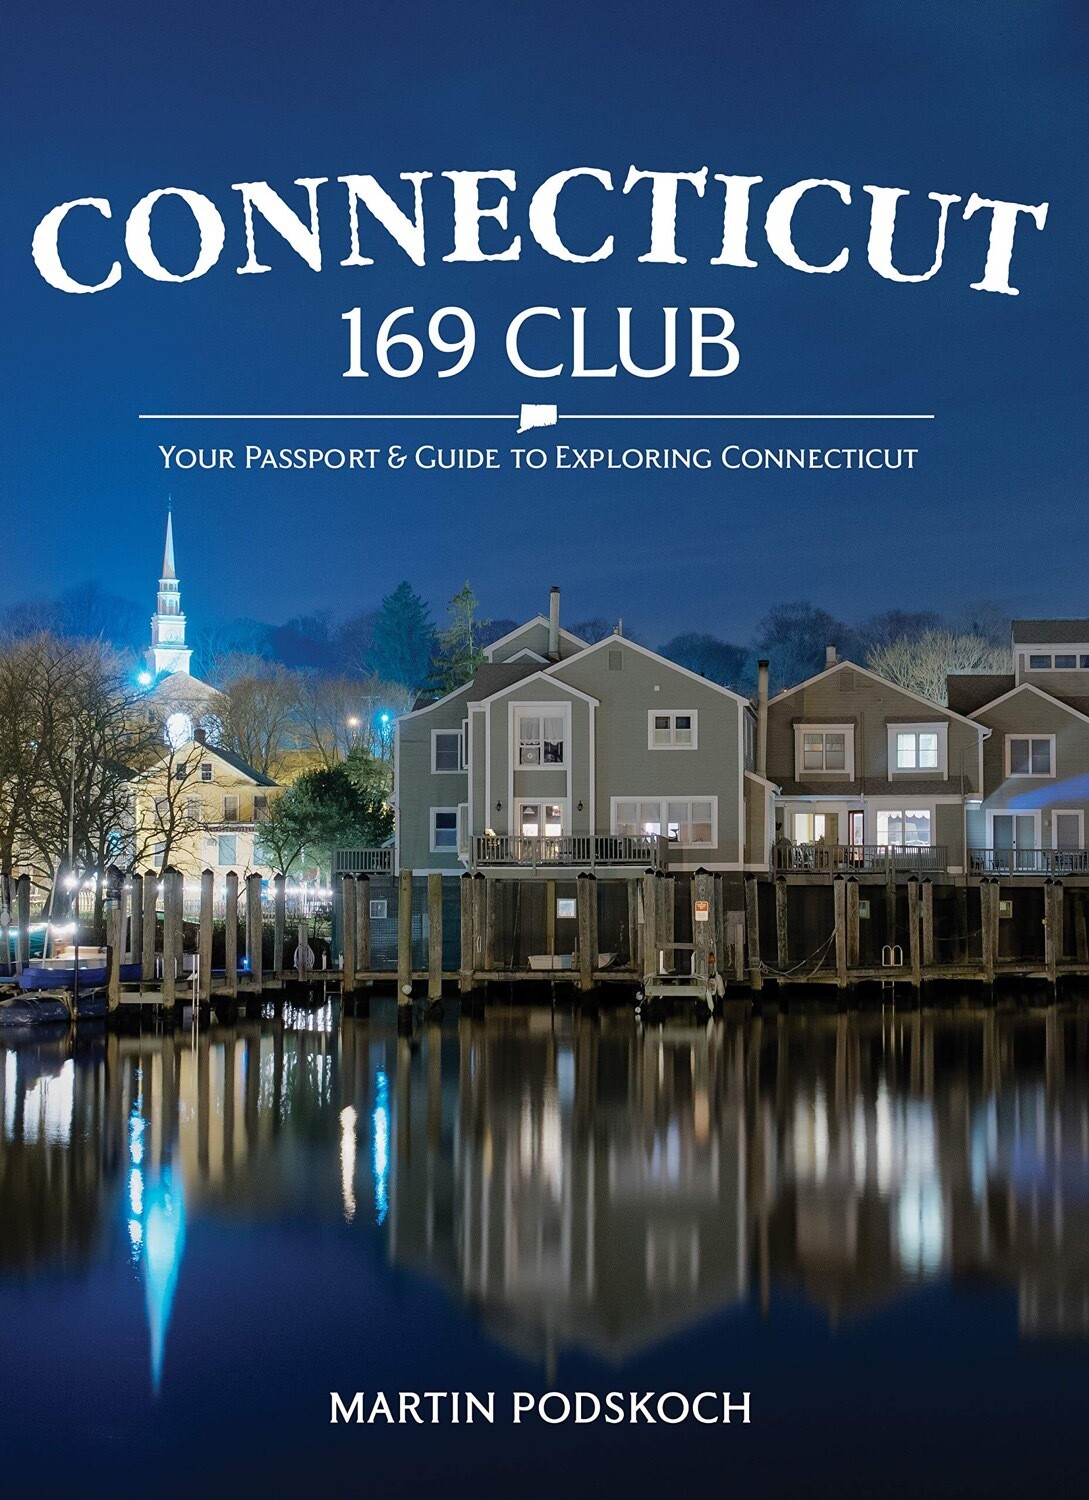 Connecticut 169 Club NEW - SIGNED